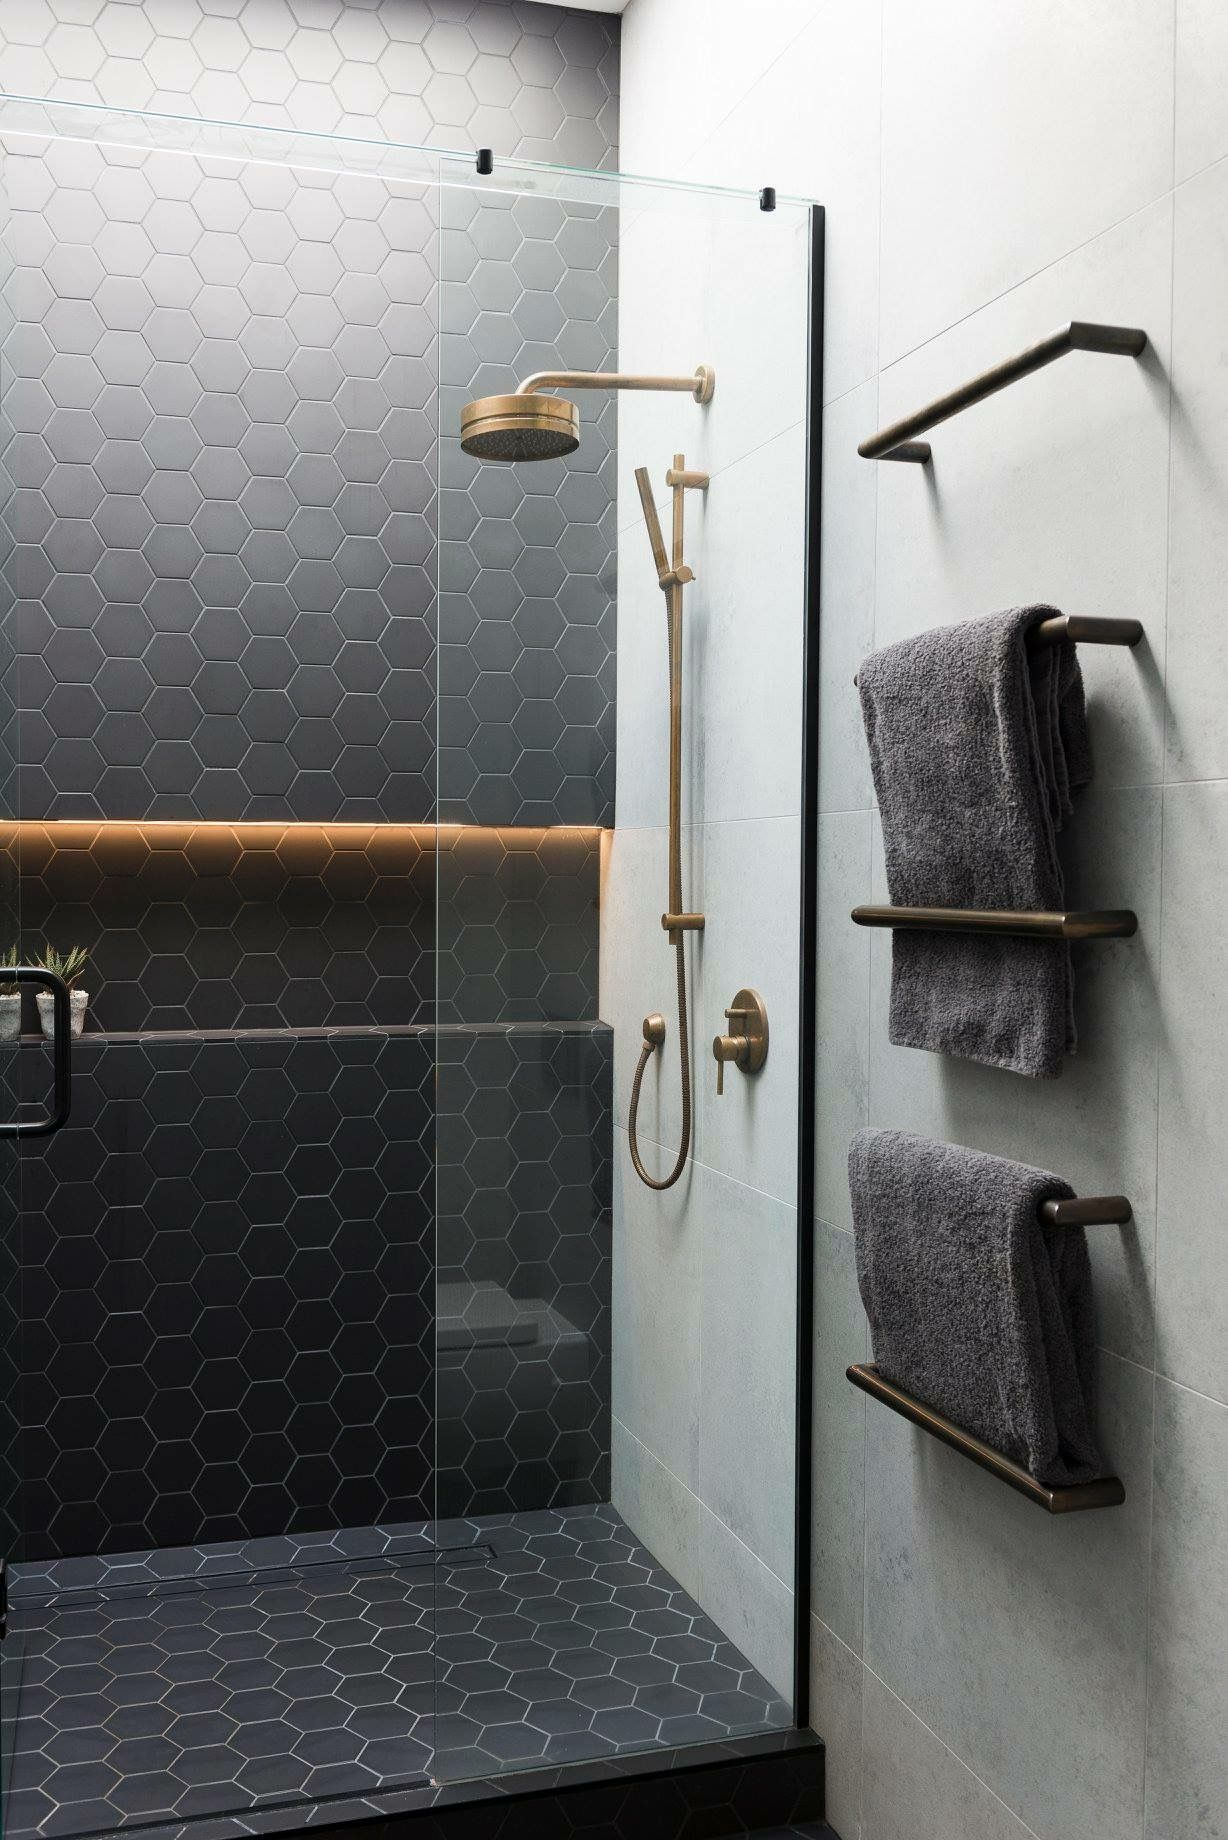 Black Frame Around Glass Shower Door References Peter In